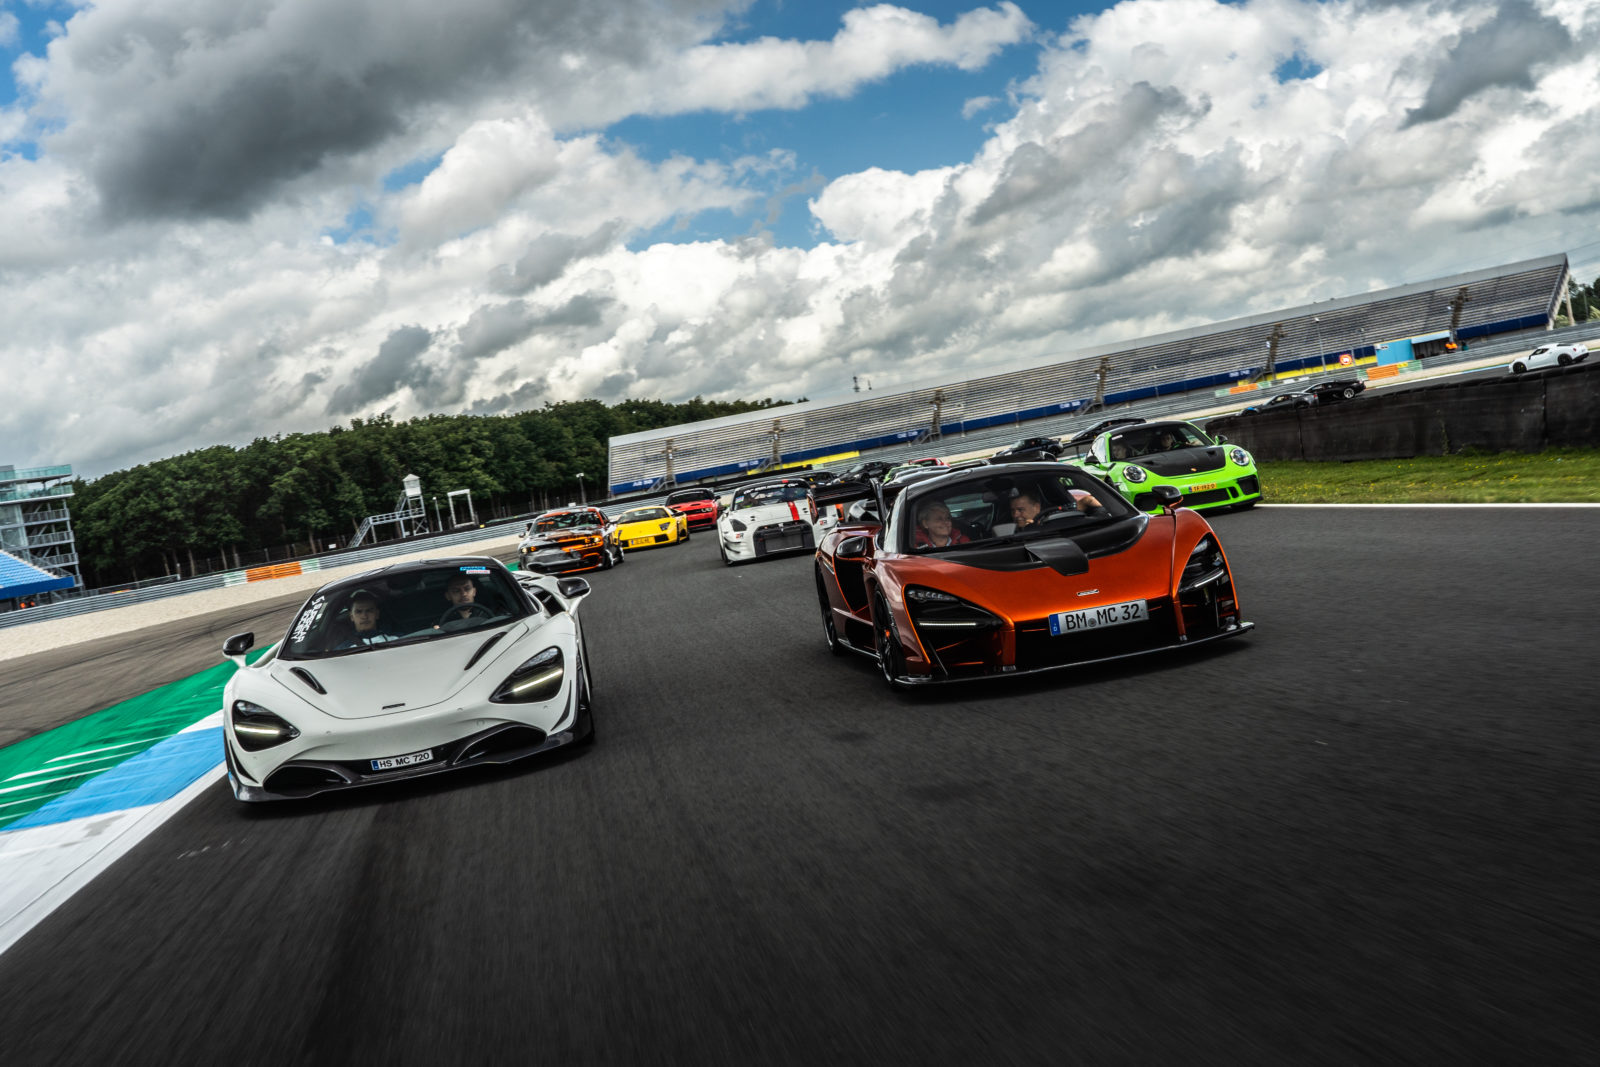 ZOLDER SUPERCAR MADNESS powered by HANKOOK